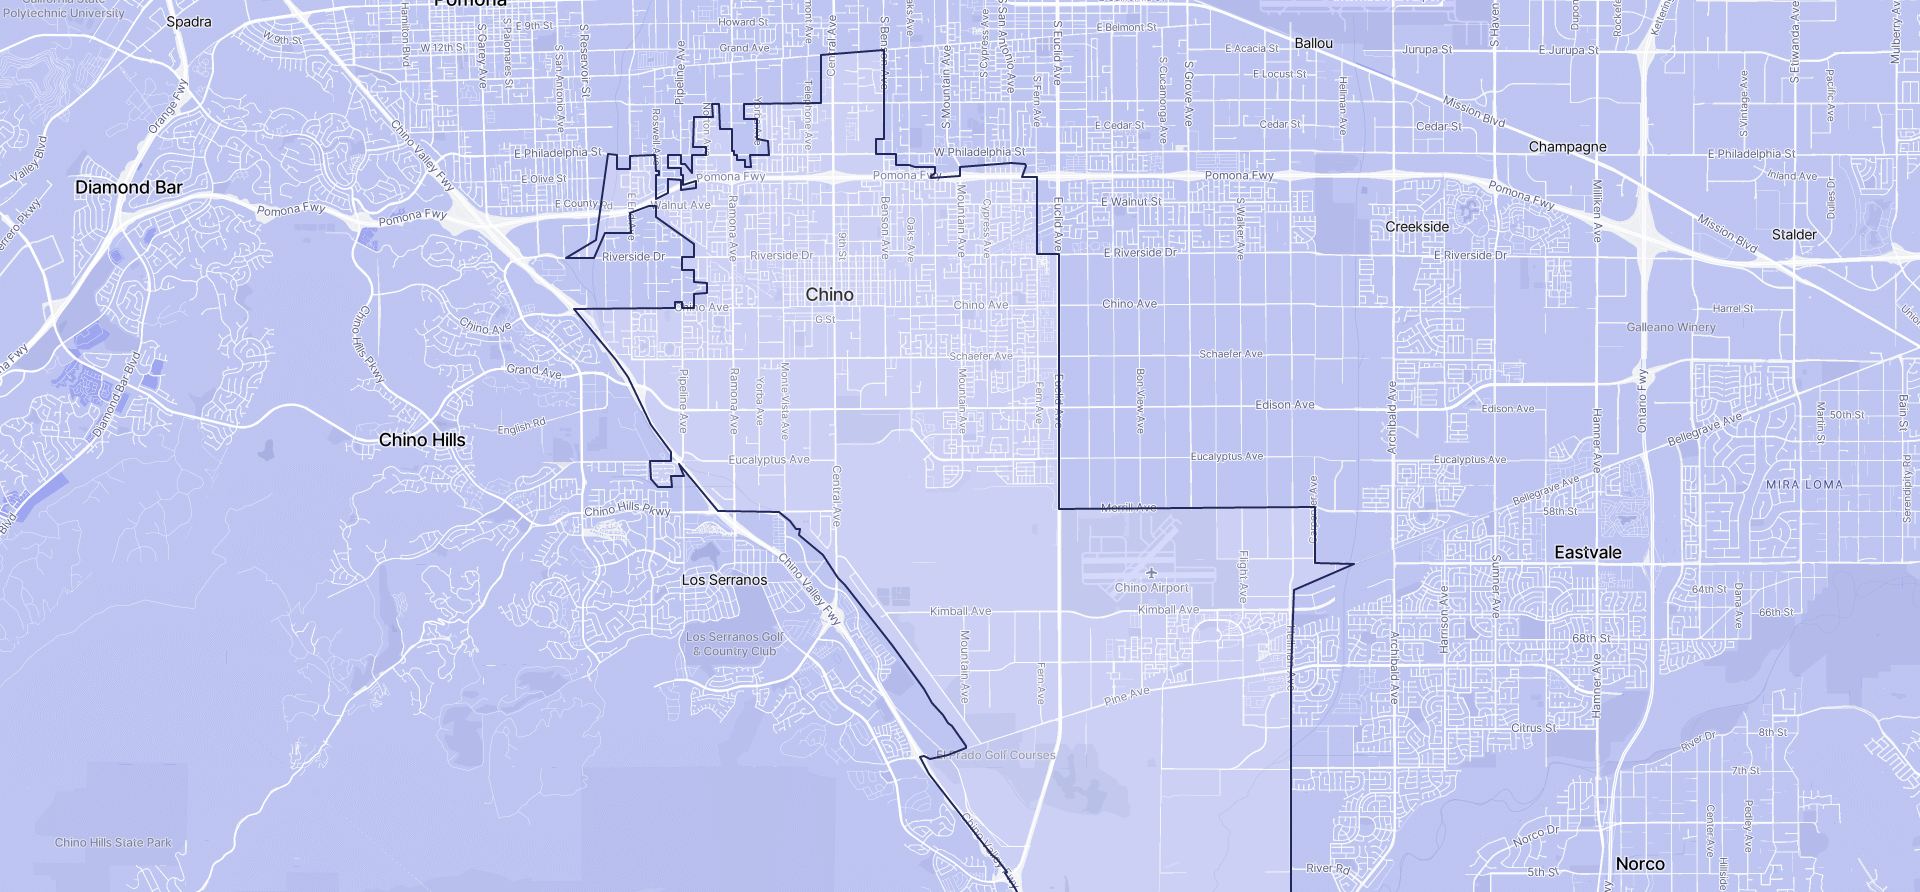 Image of Chino boundaries on a map.